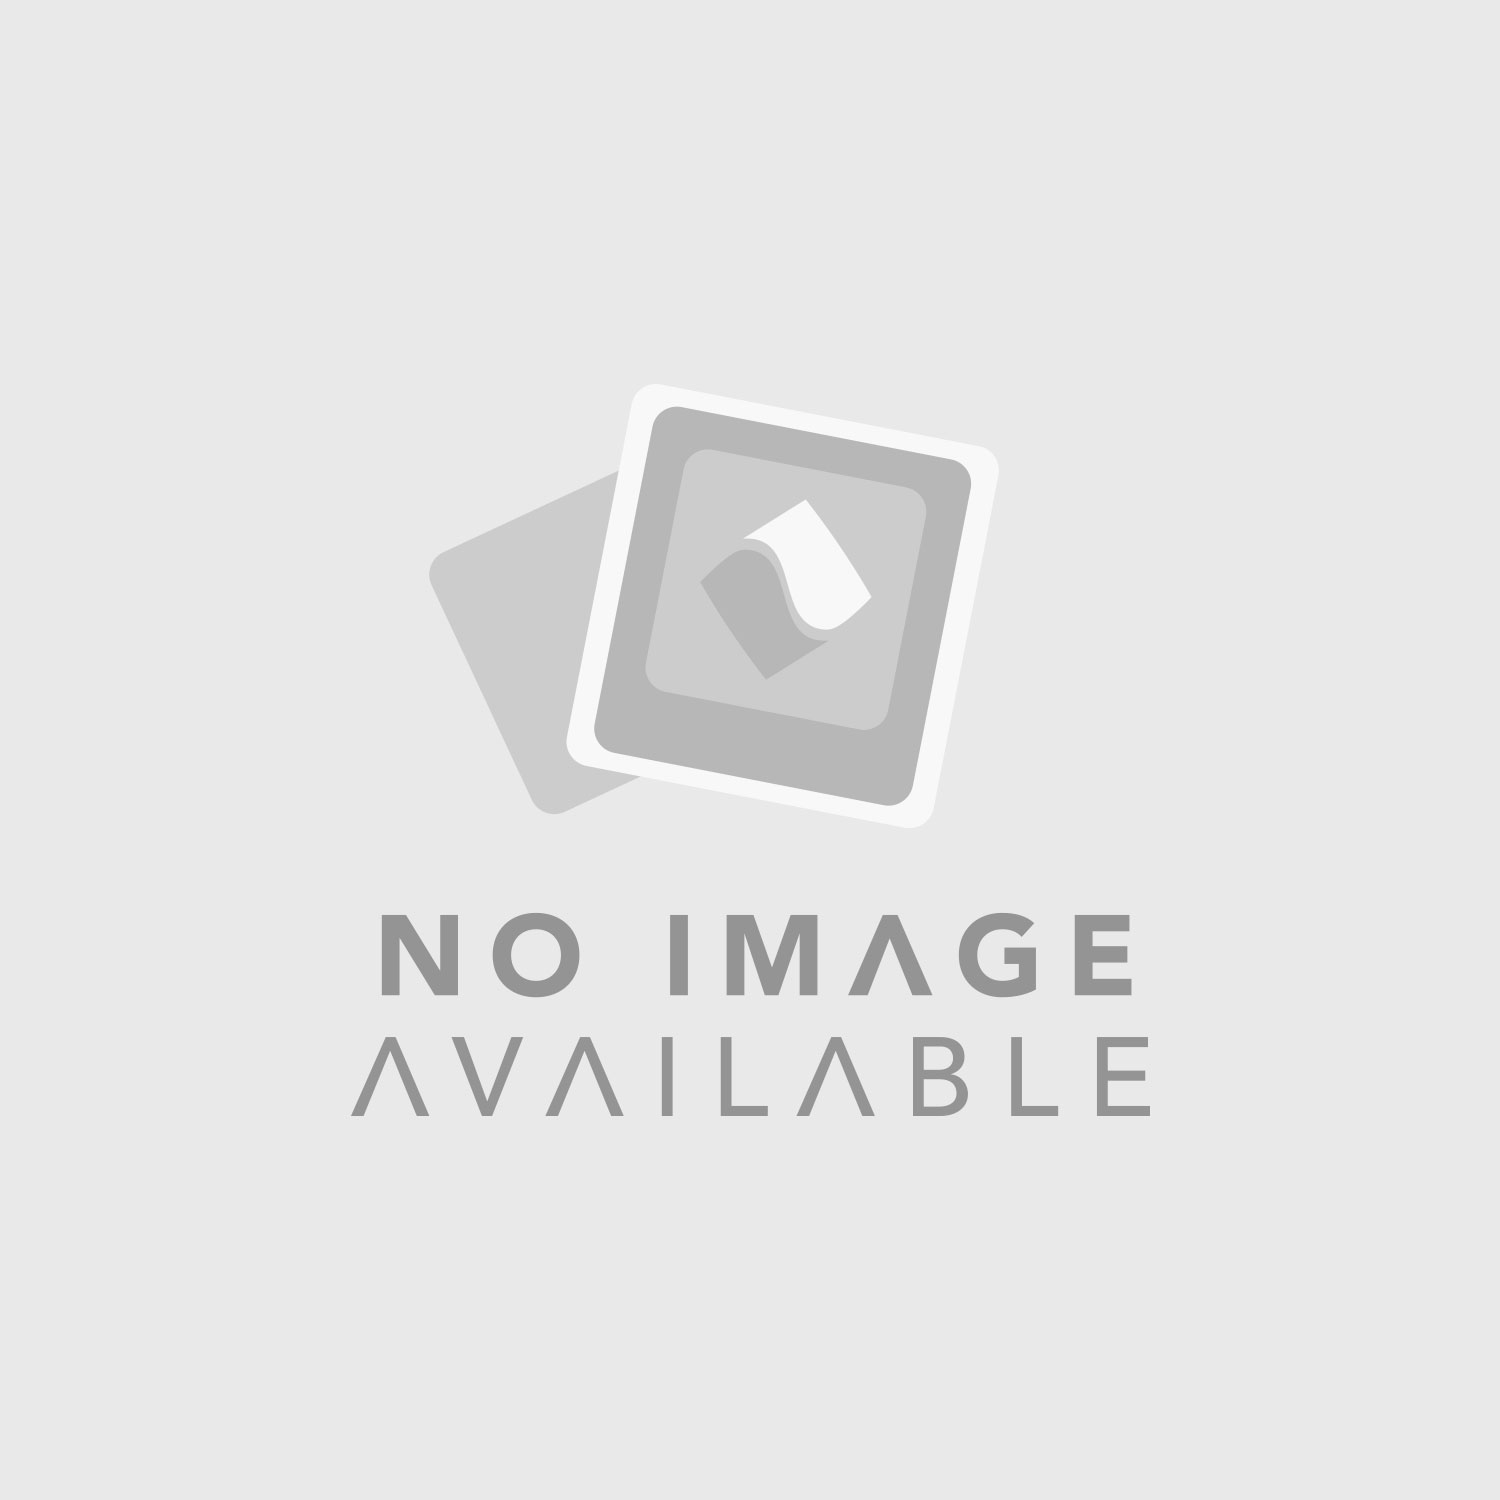 Canare BCP-A77 75 Ohm BNC Crimp Plug for LV-77S, 8281F